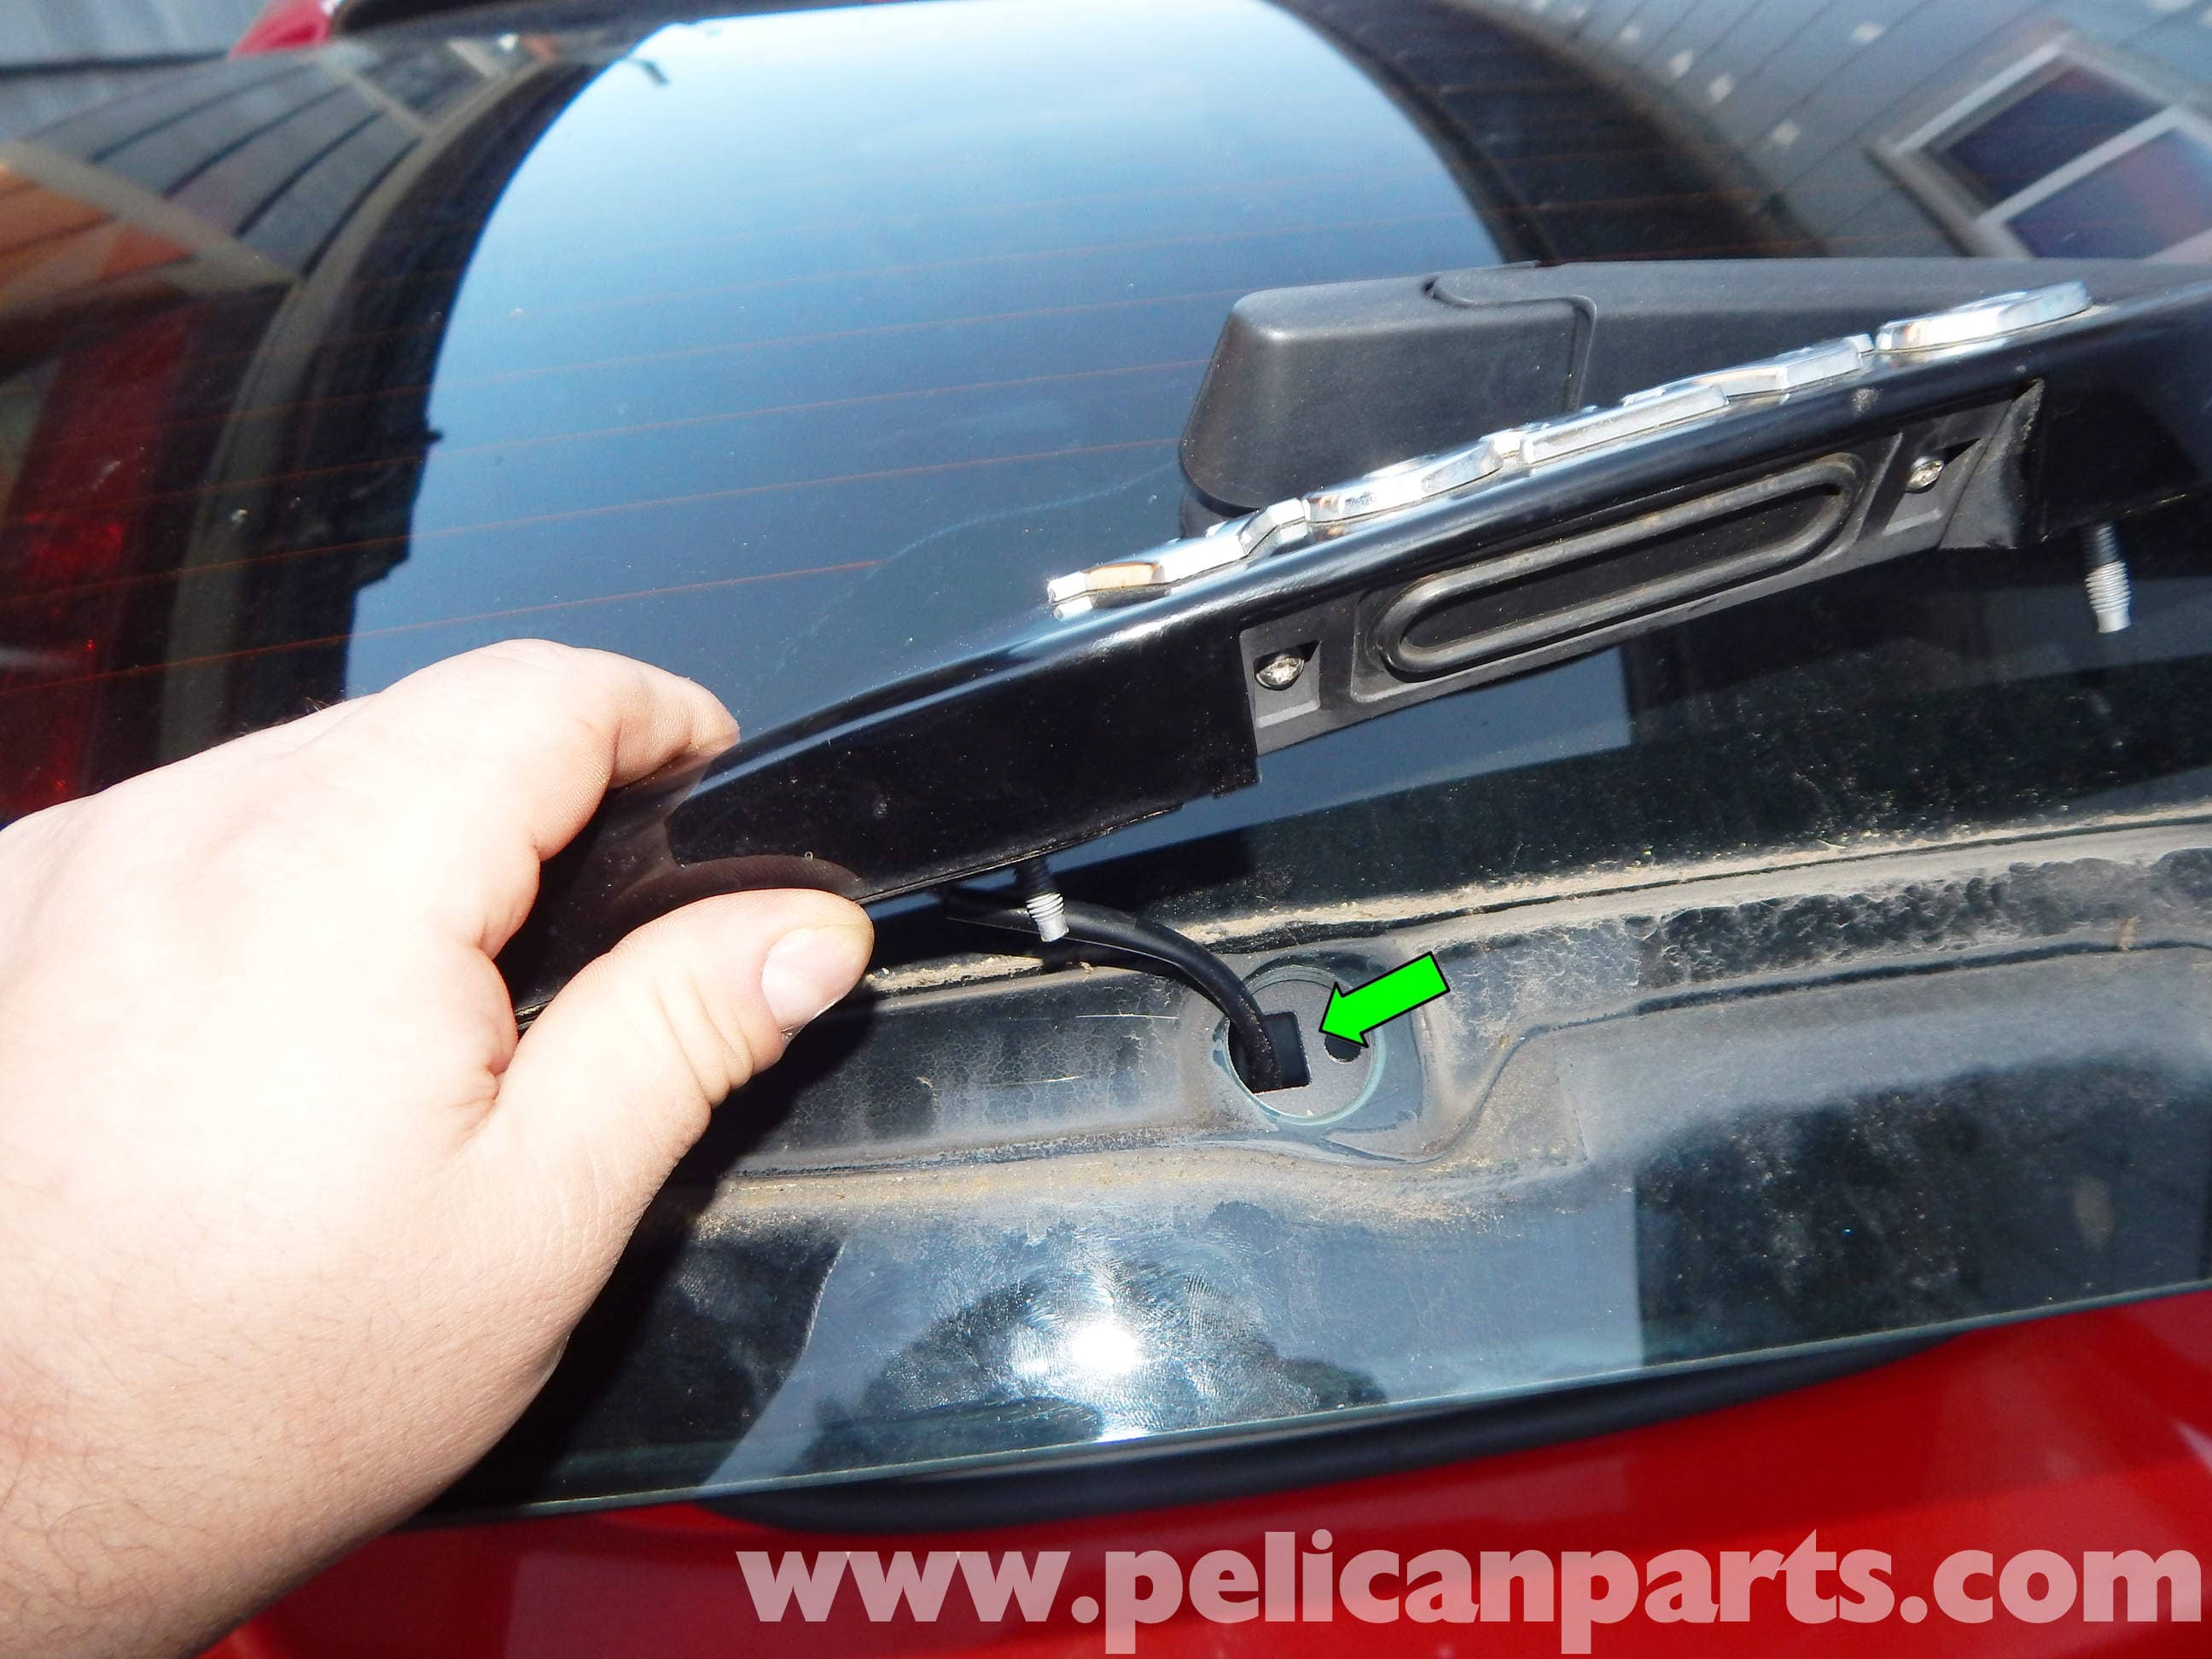 Volvo C30 Rear Hatch Switch Replacement | C30 (2007-2013) | Pelican Parts DIY Maintenance Article